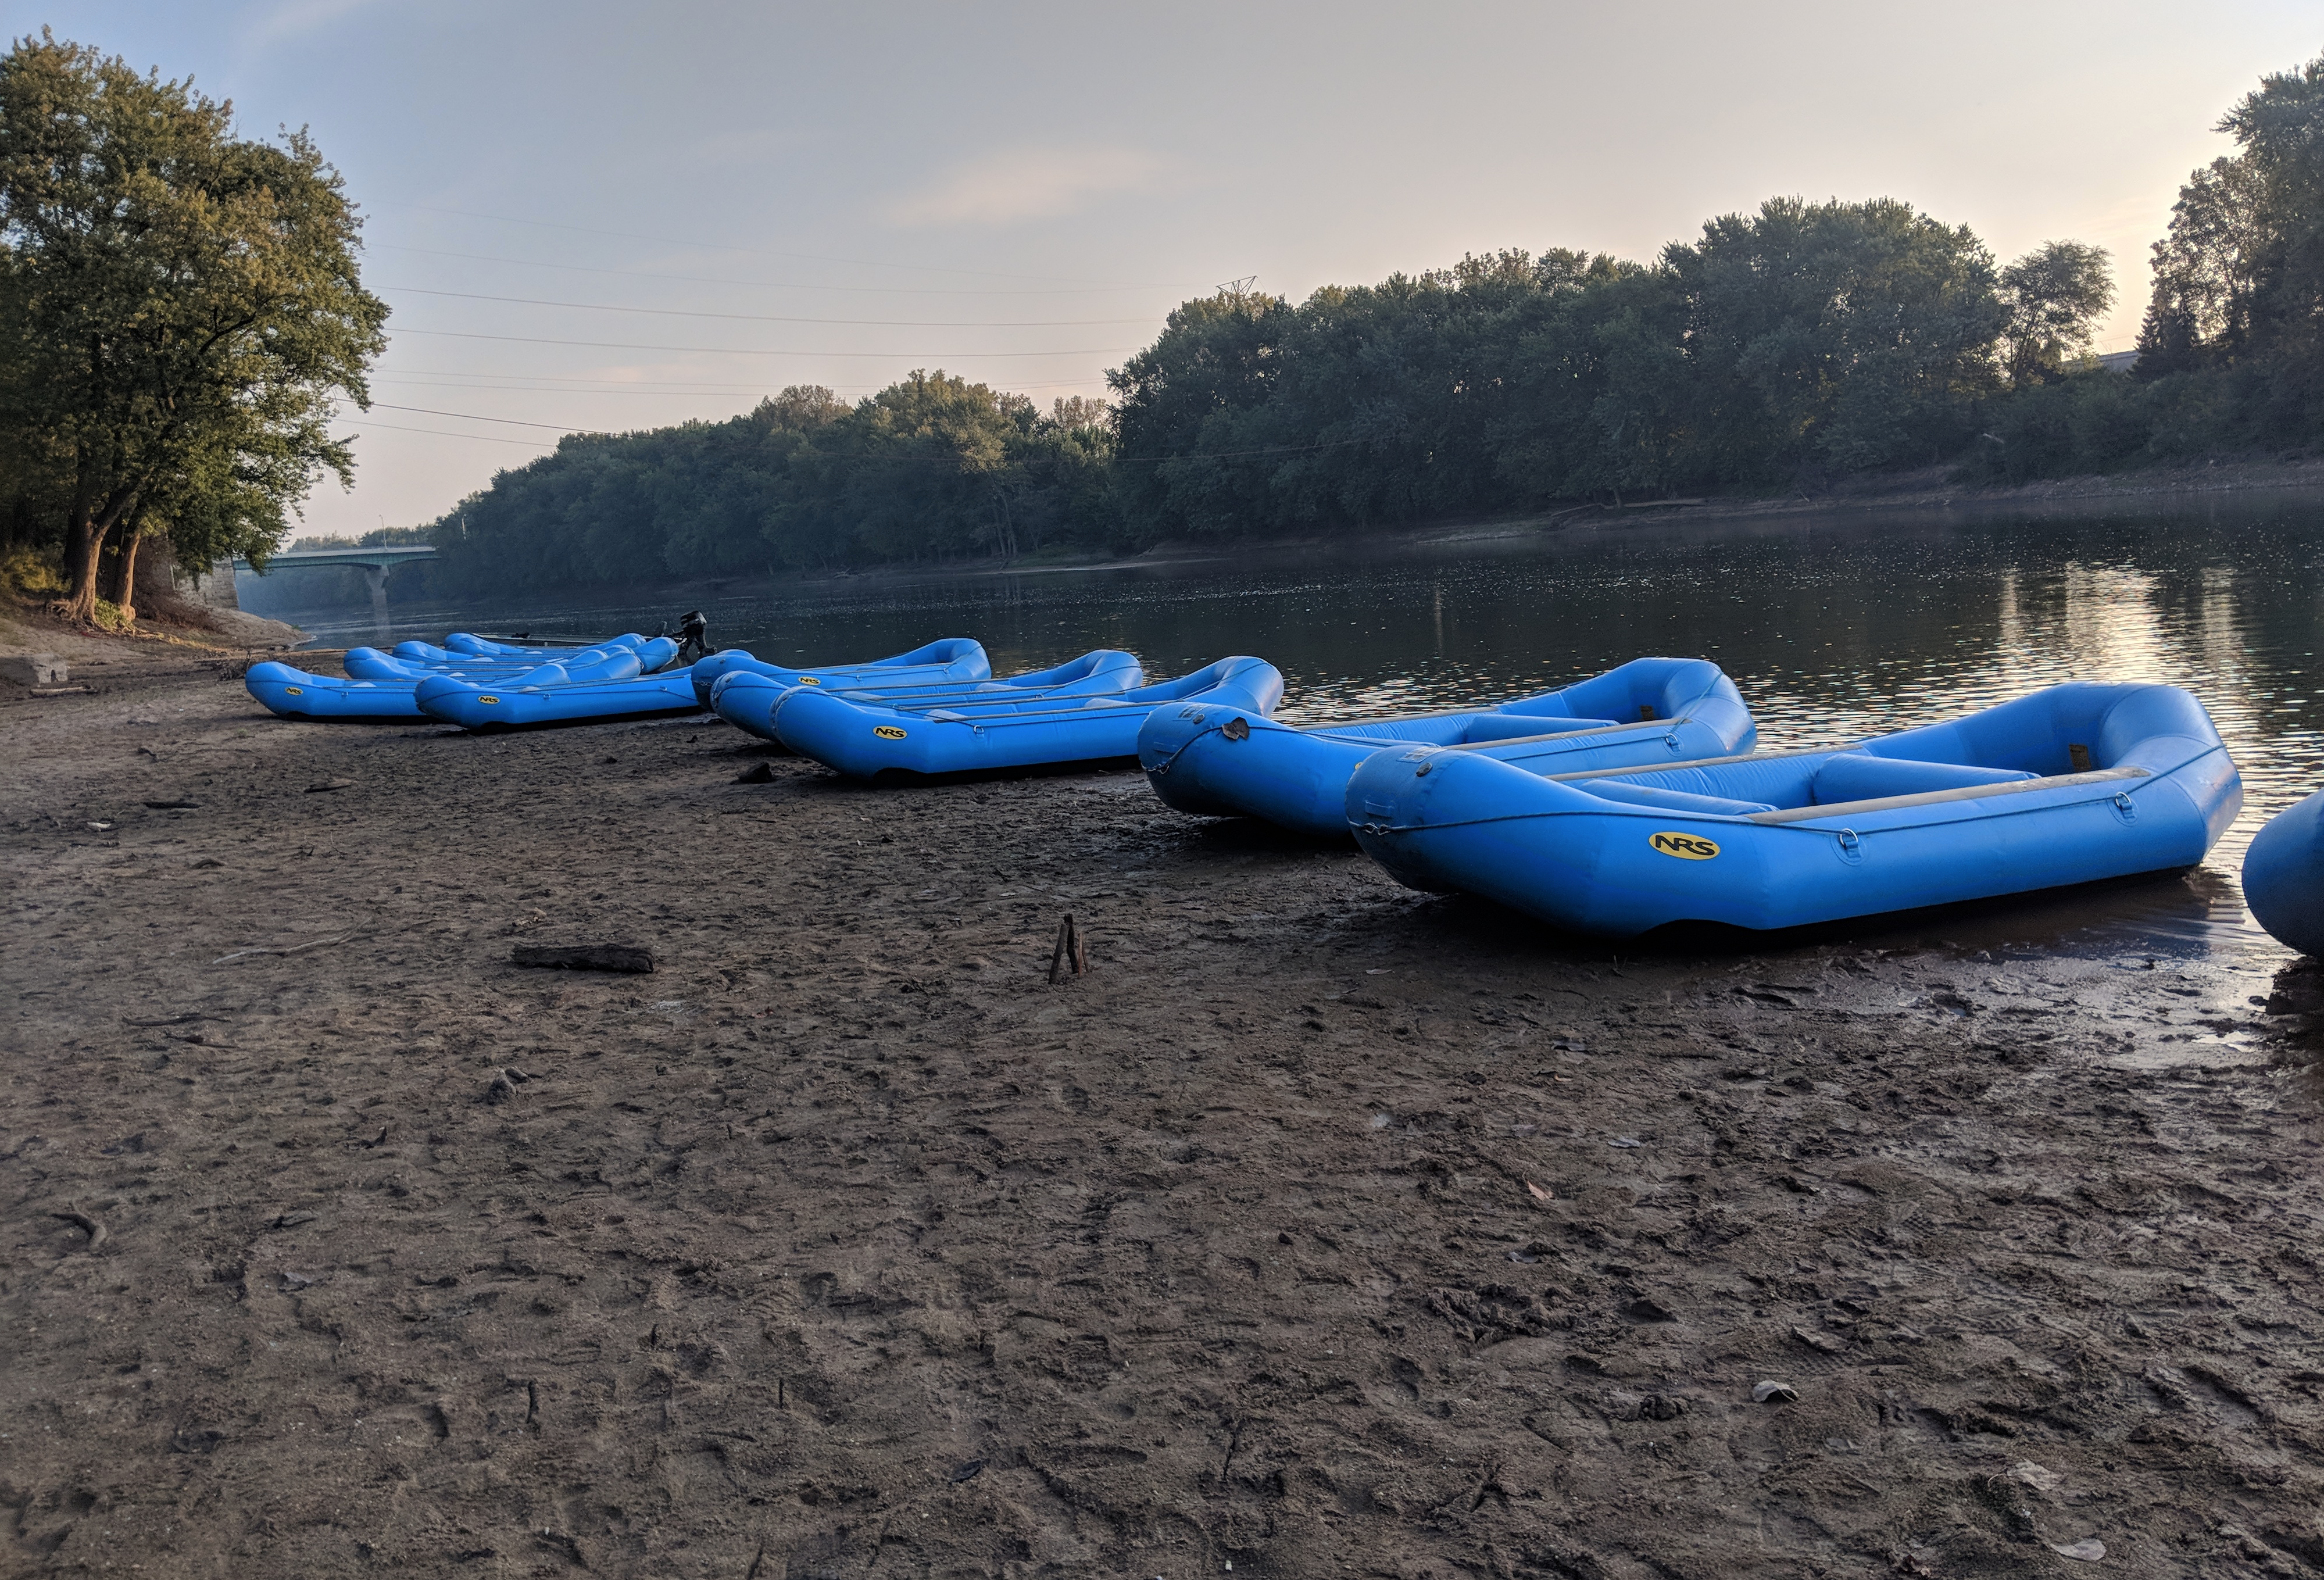 Rafts lined up at Tapawingo Park